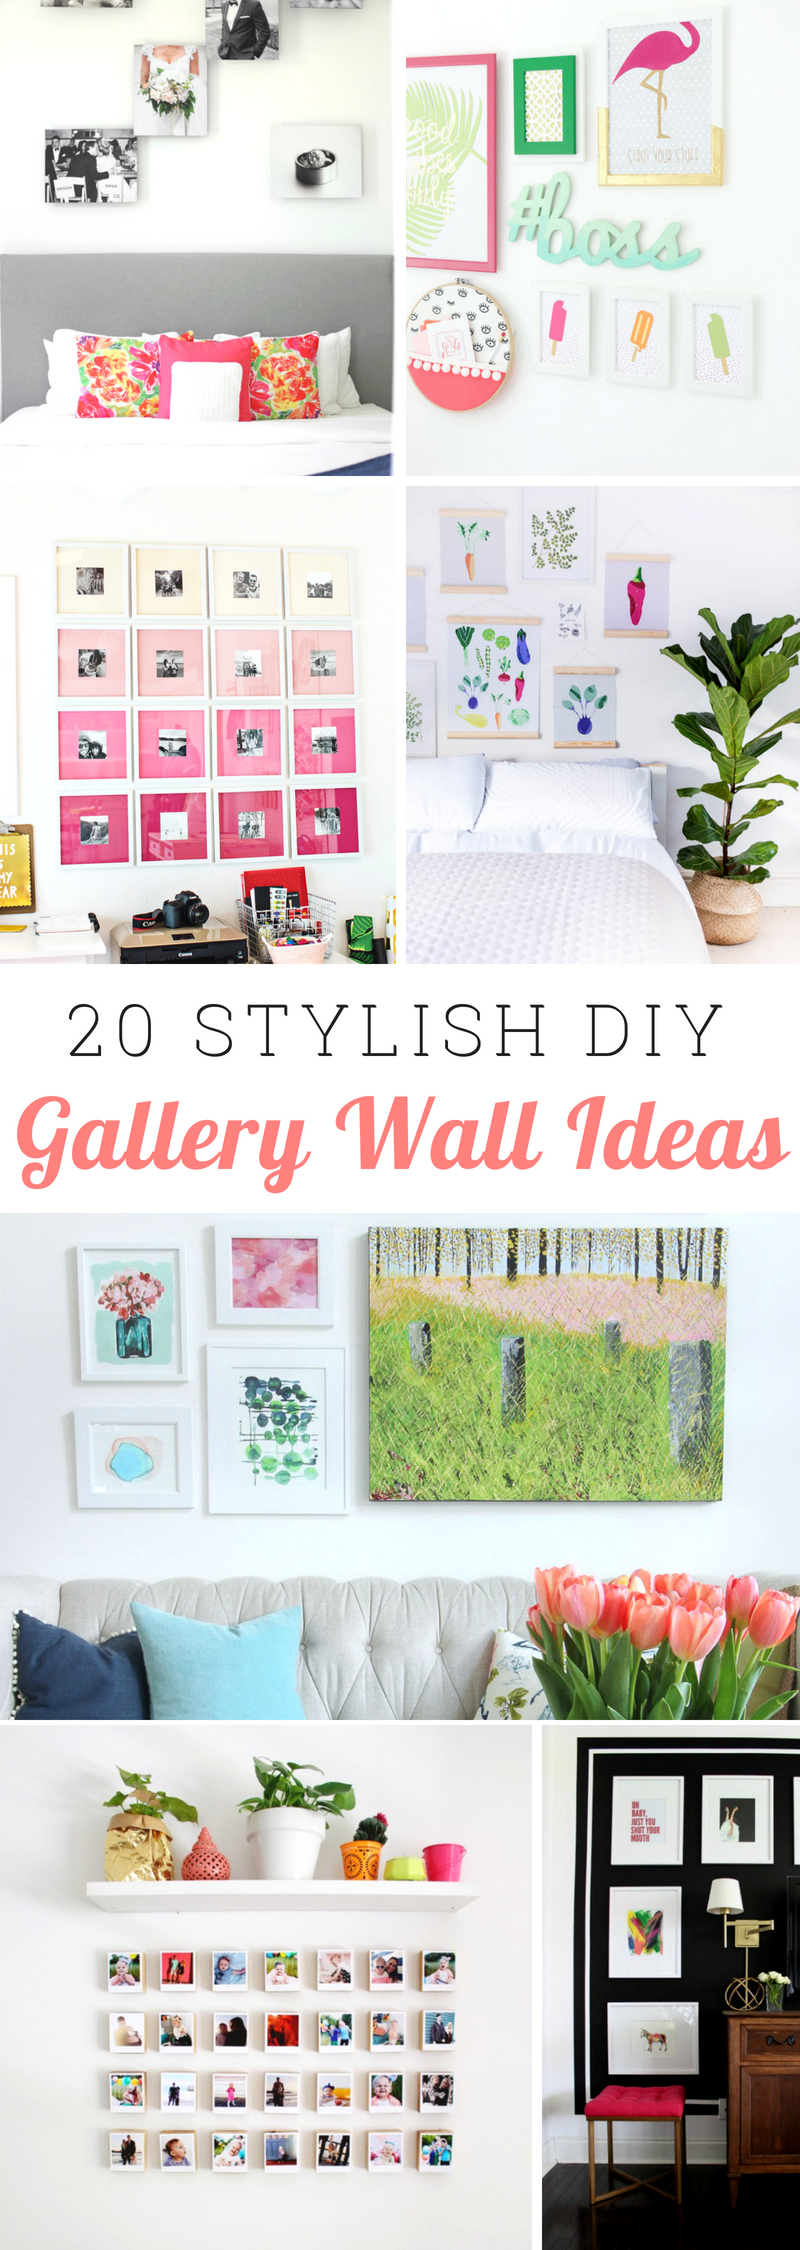 Stylish Gallery Wall Ideas